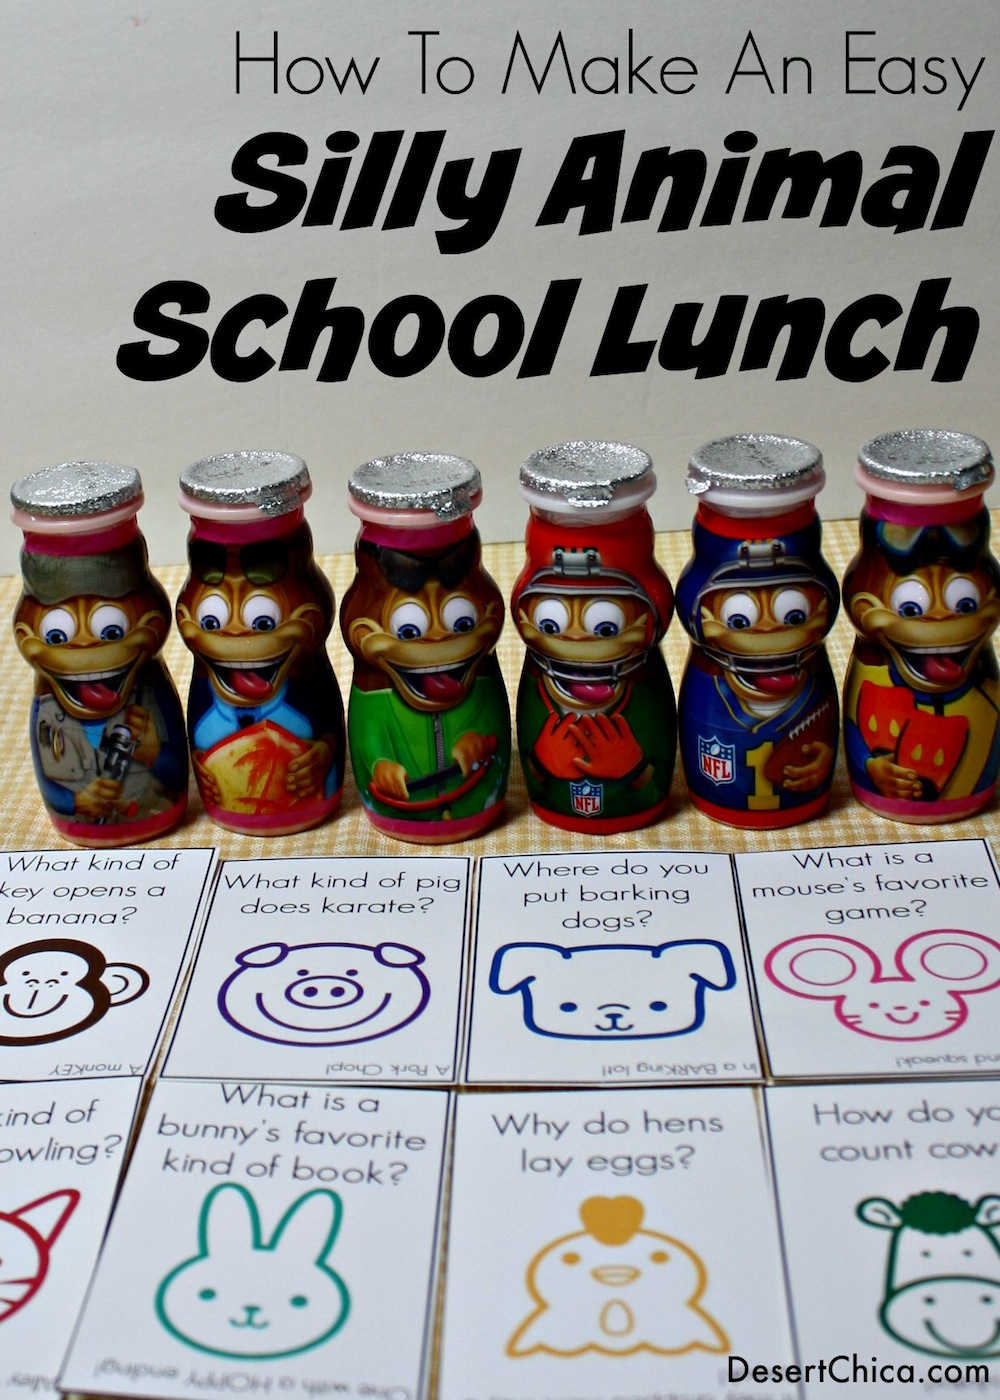 How to Make an easy silly animal school lunch